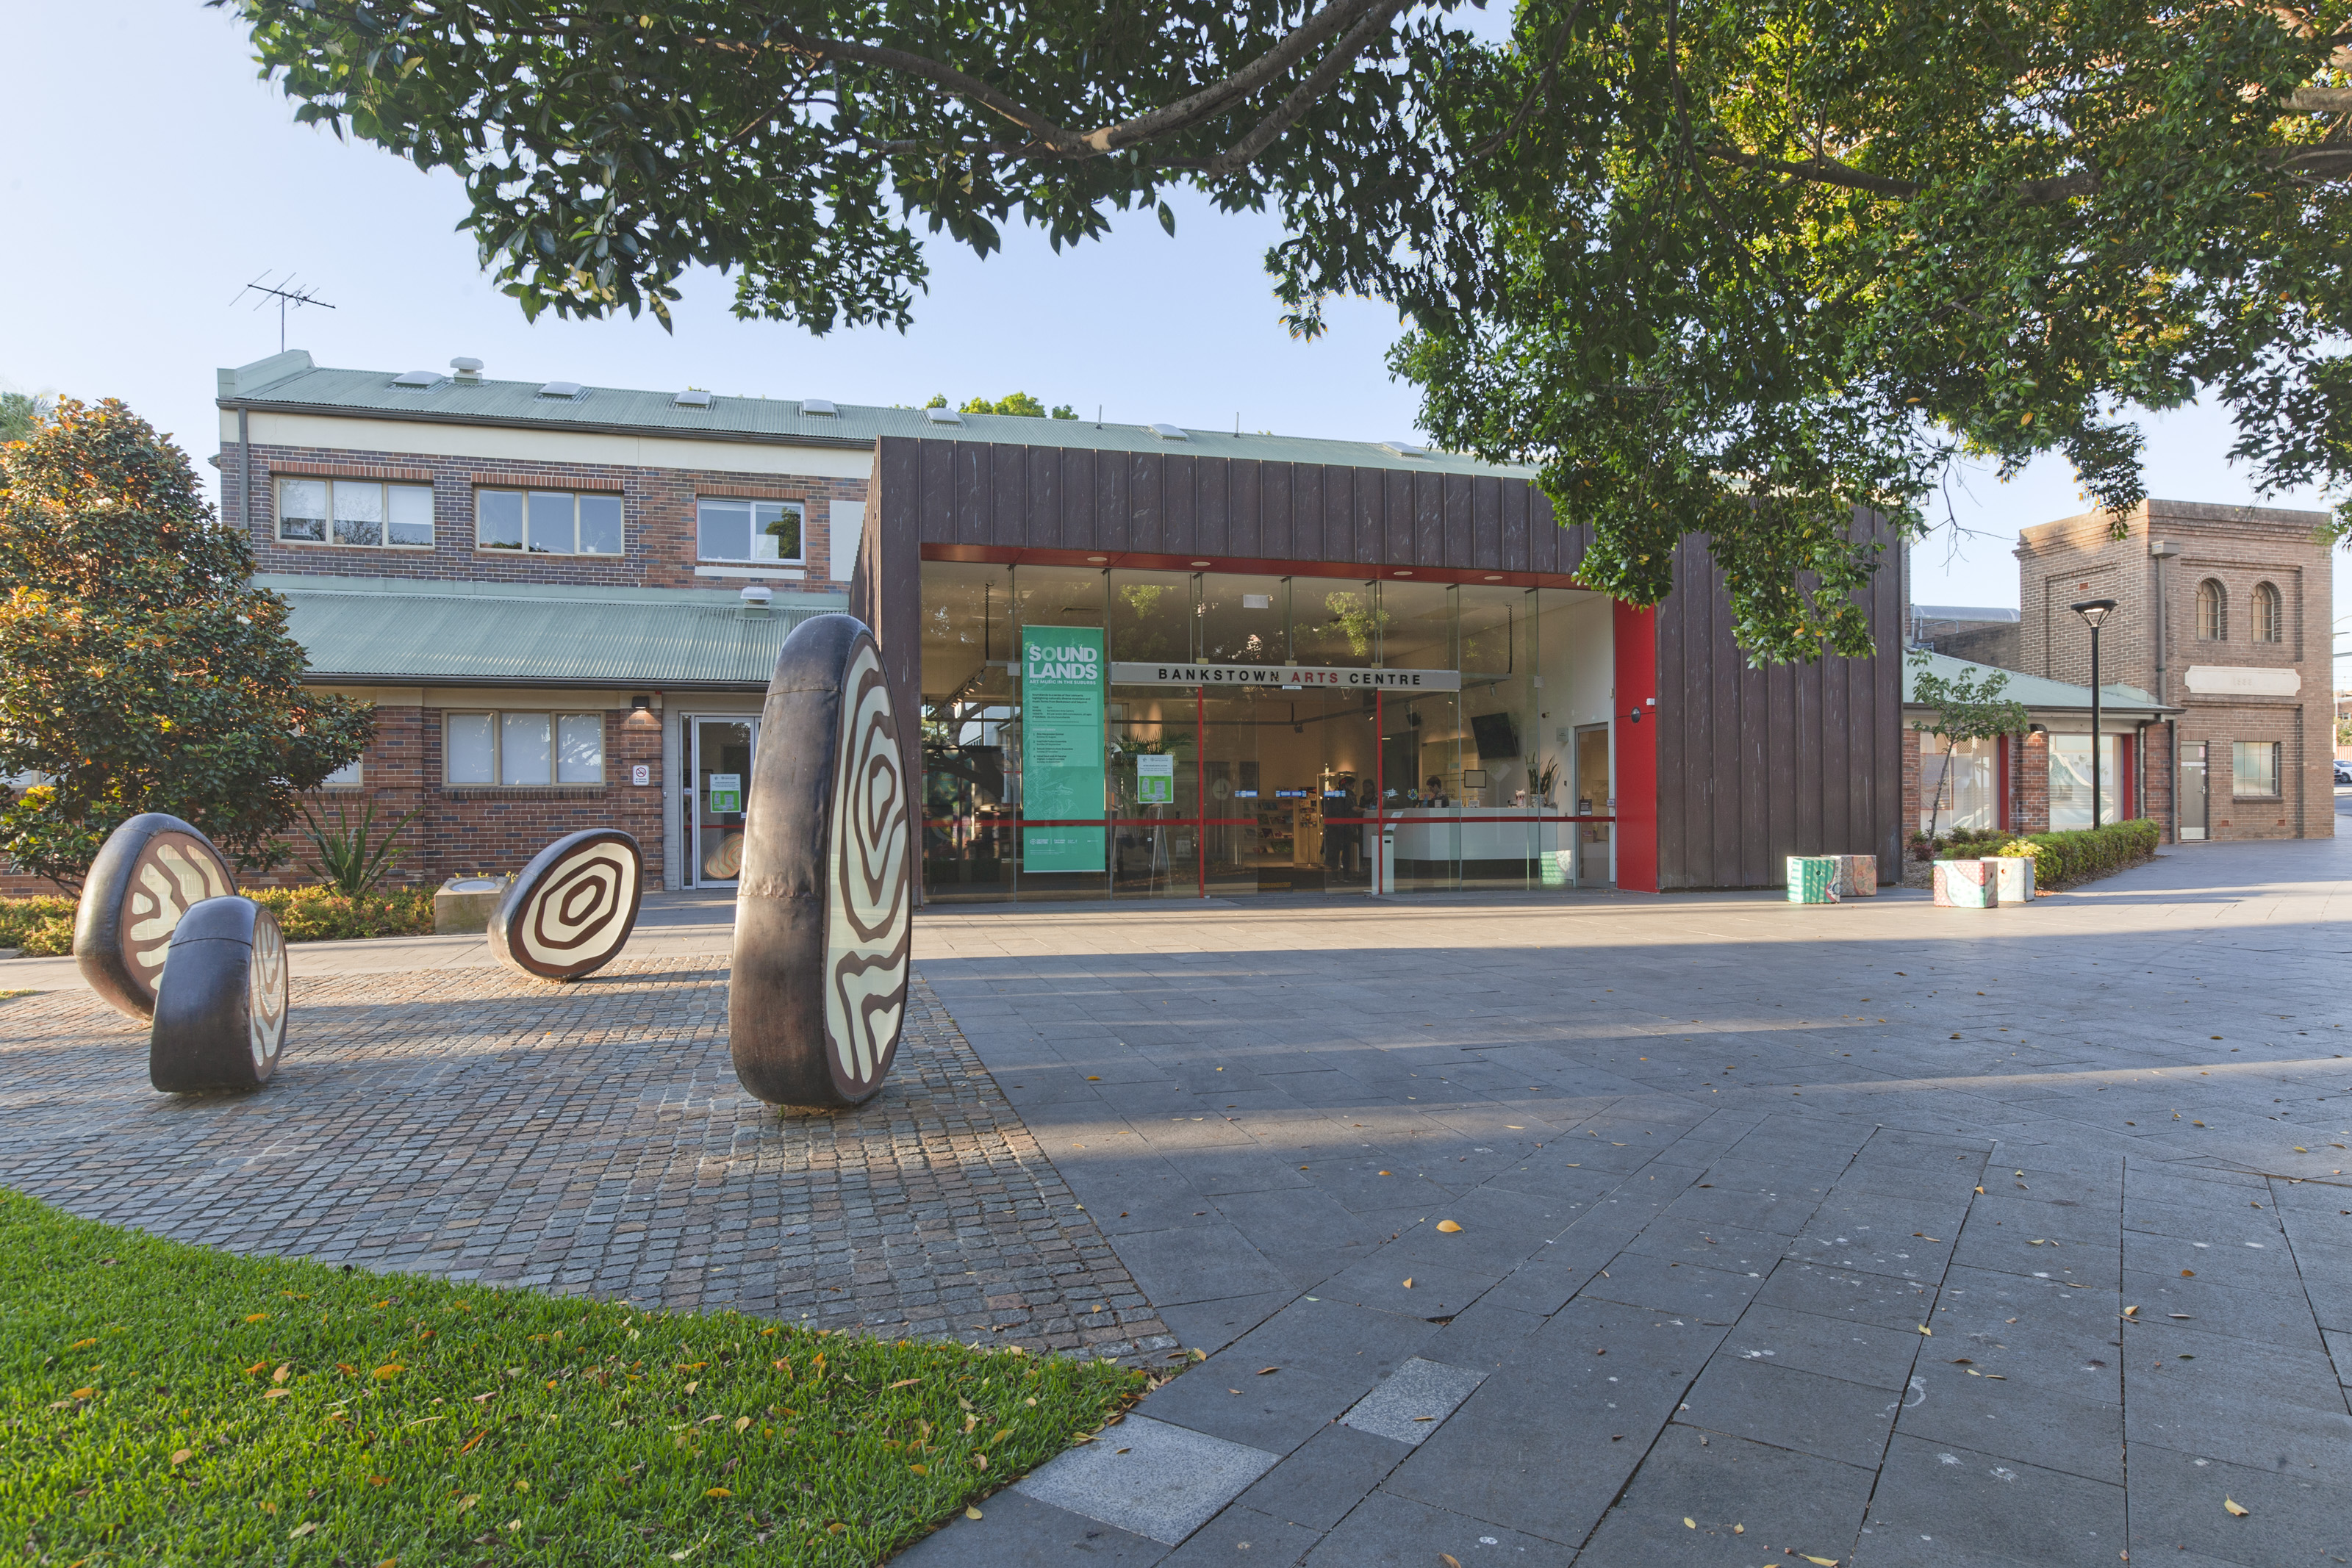 Photo of the arts centre entrance